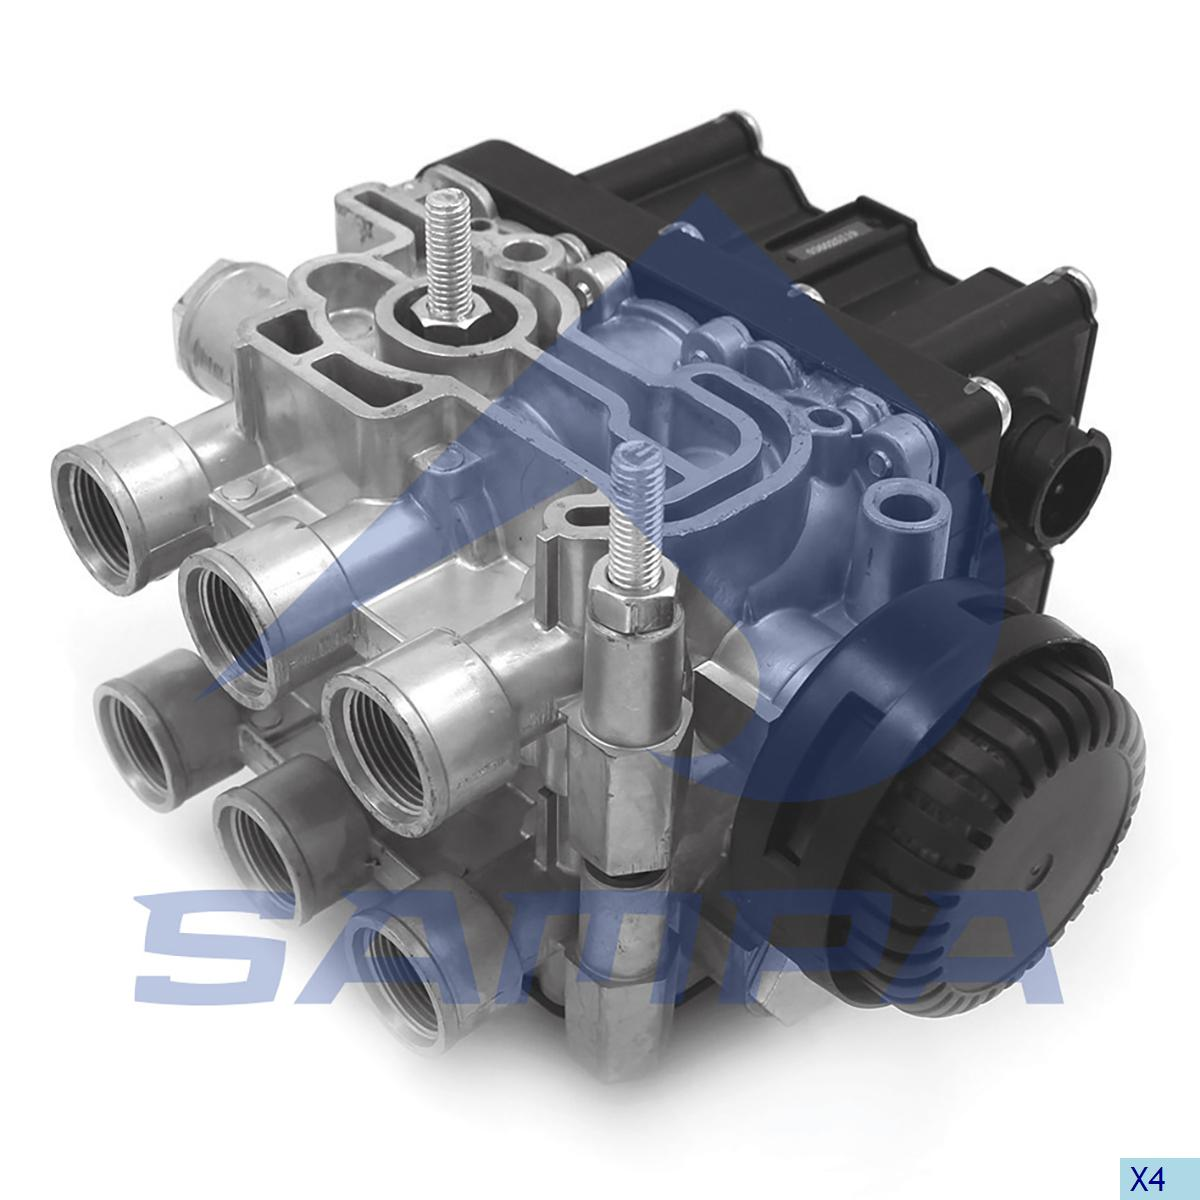 Solenoid Valve, Iveco, Compressed Air System